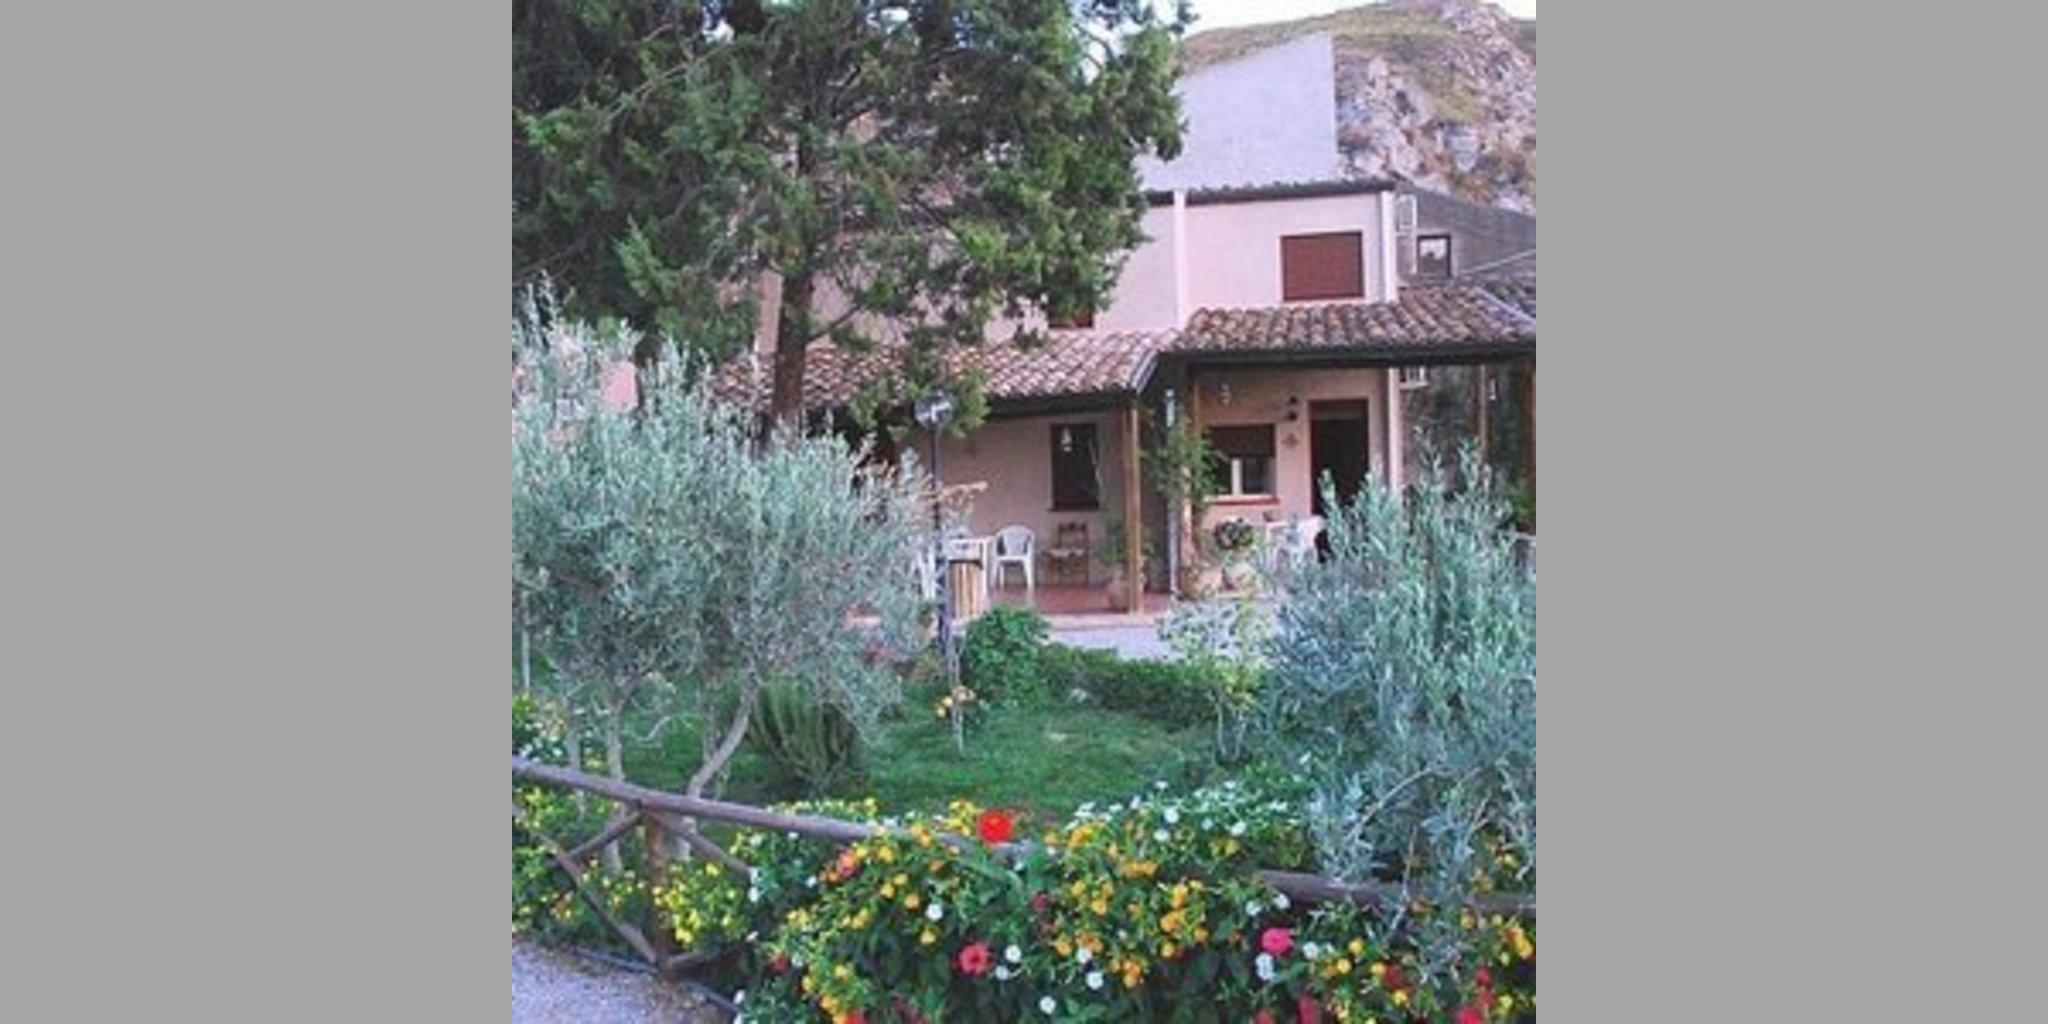 Bed & Breakfast Caccamo - Caccamo